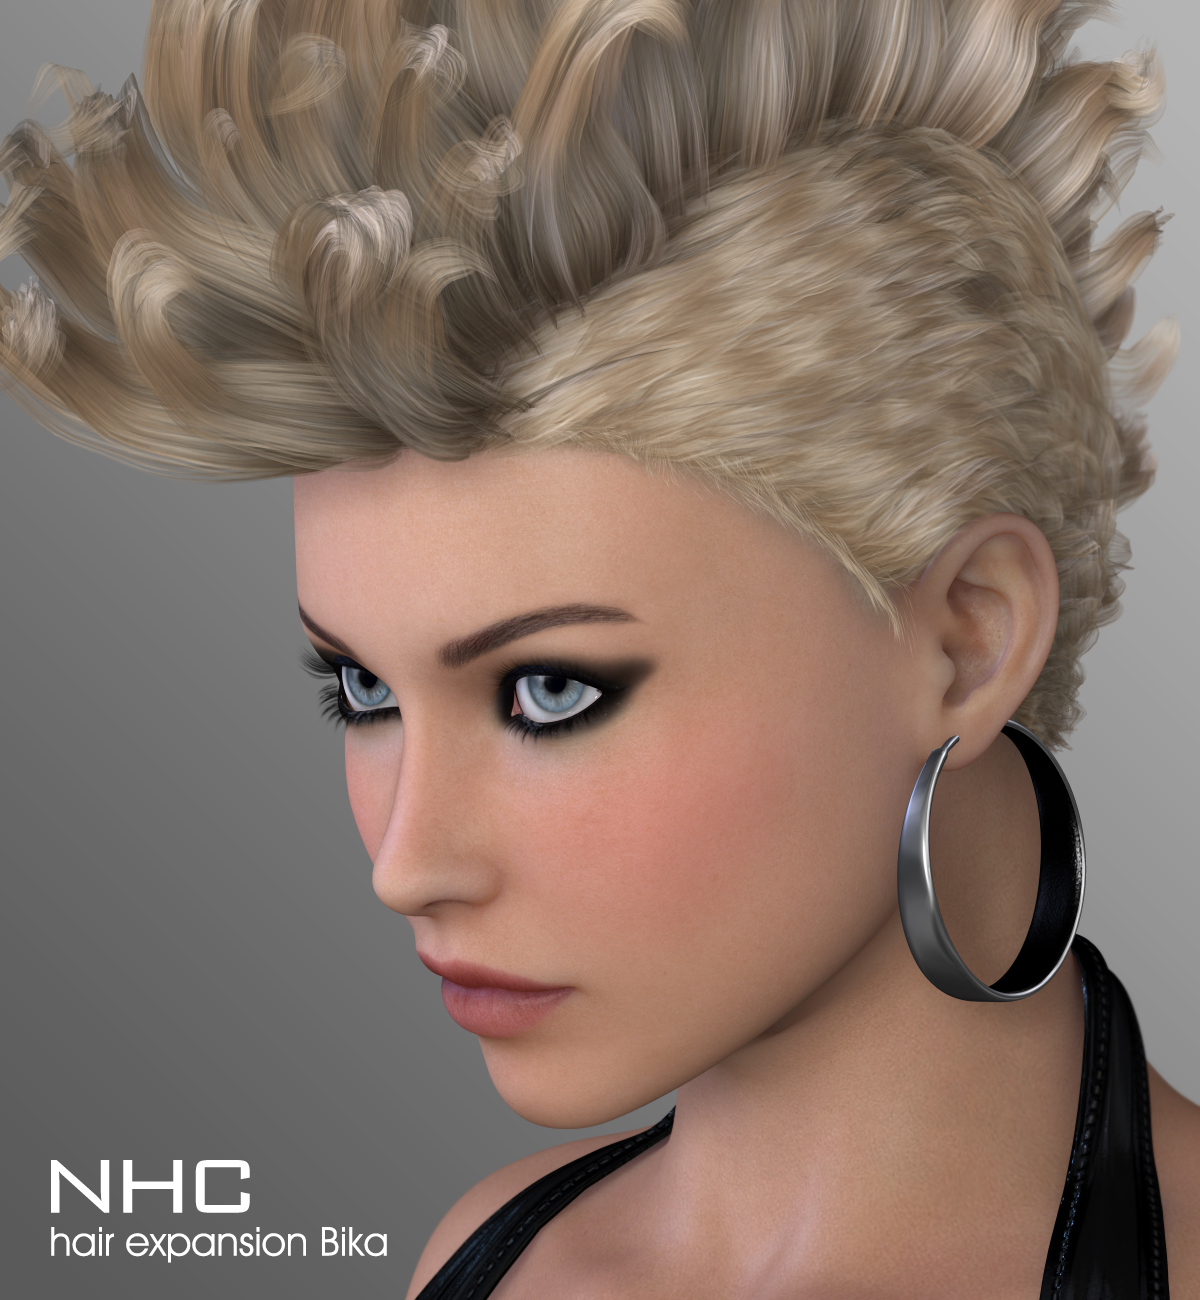 NHC Expansion : Bika Hair